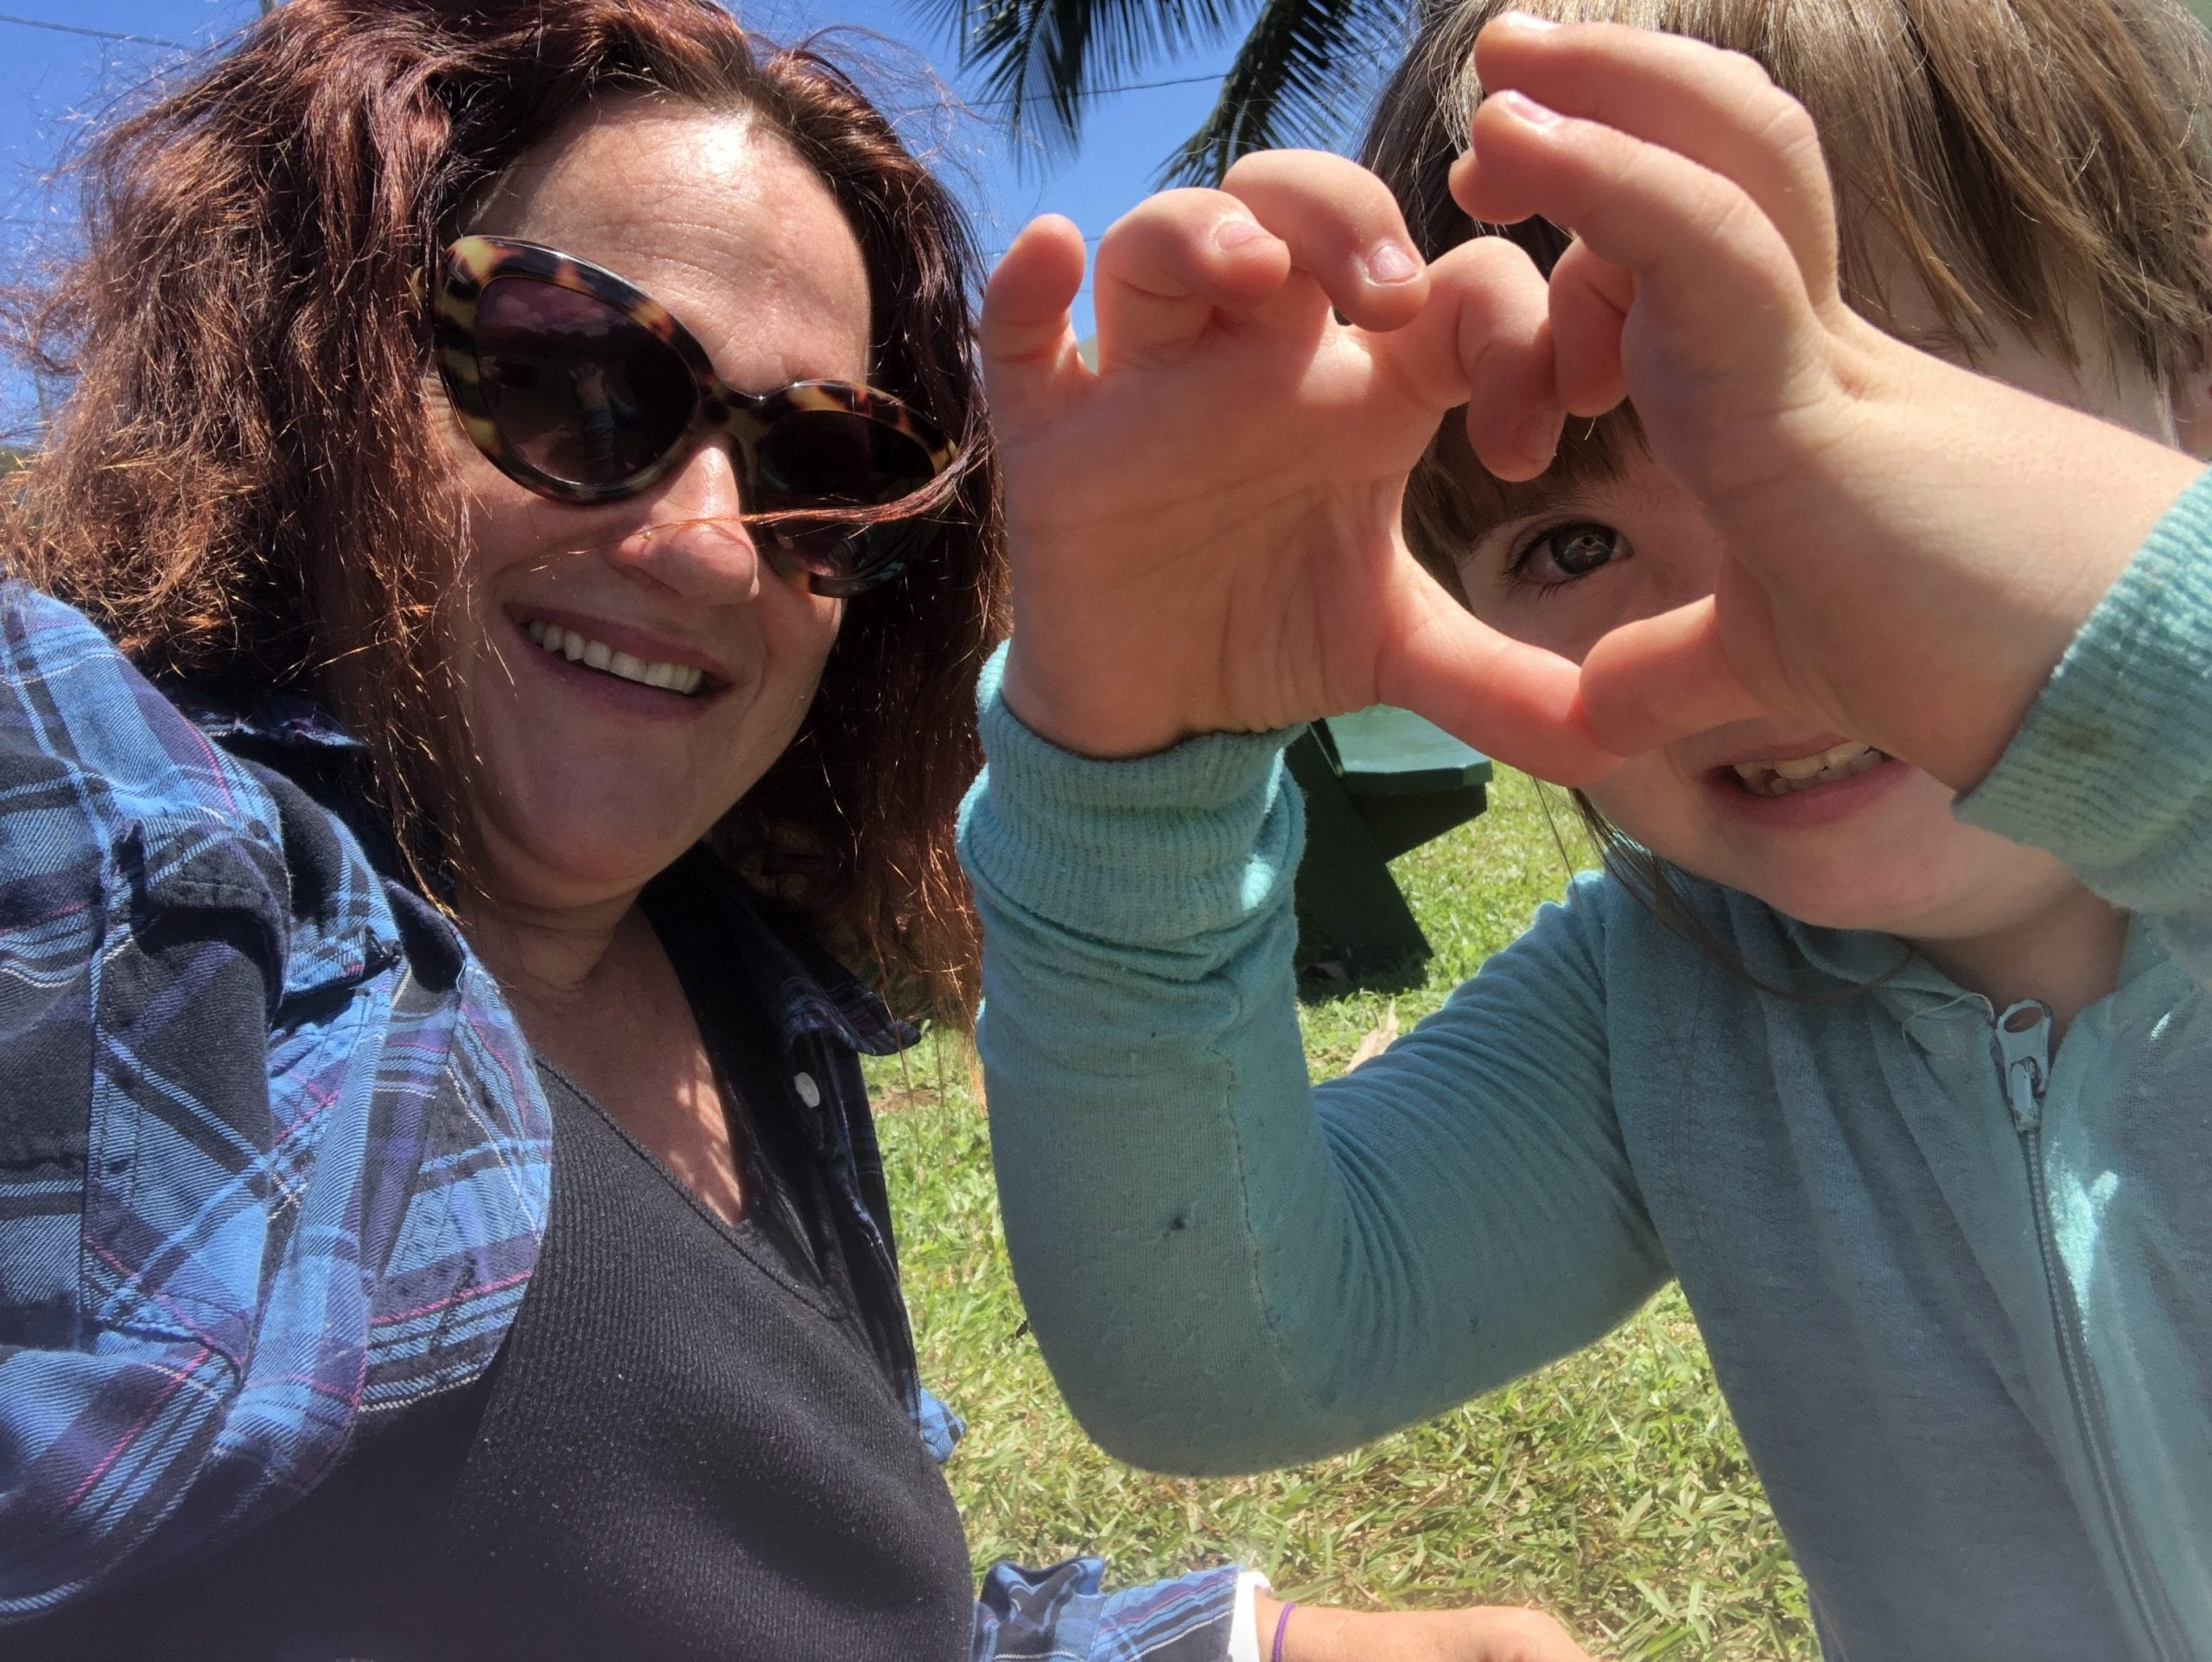 disabled mom parenting project: woman on left with dark hair and sunglasses is smiling while a child is making a heart shape with her hands, also smiling